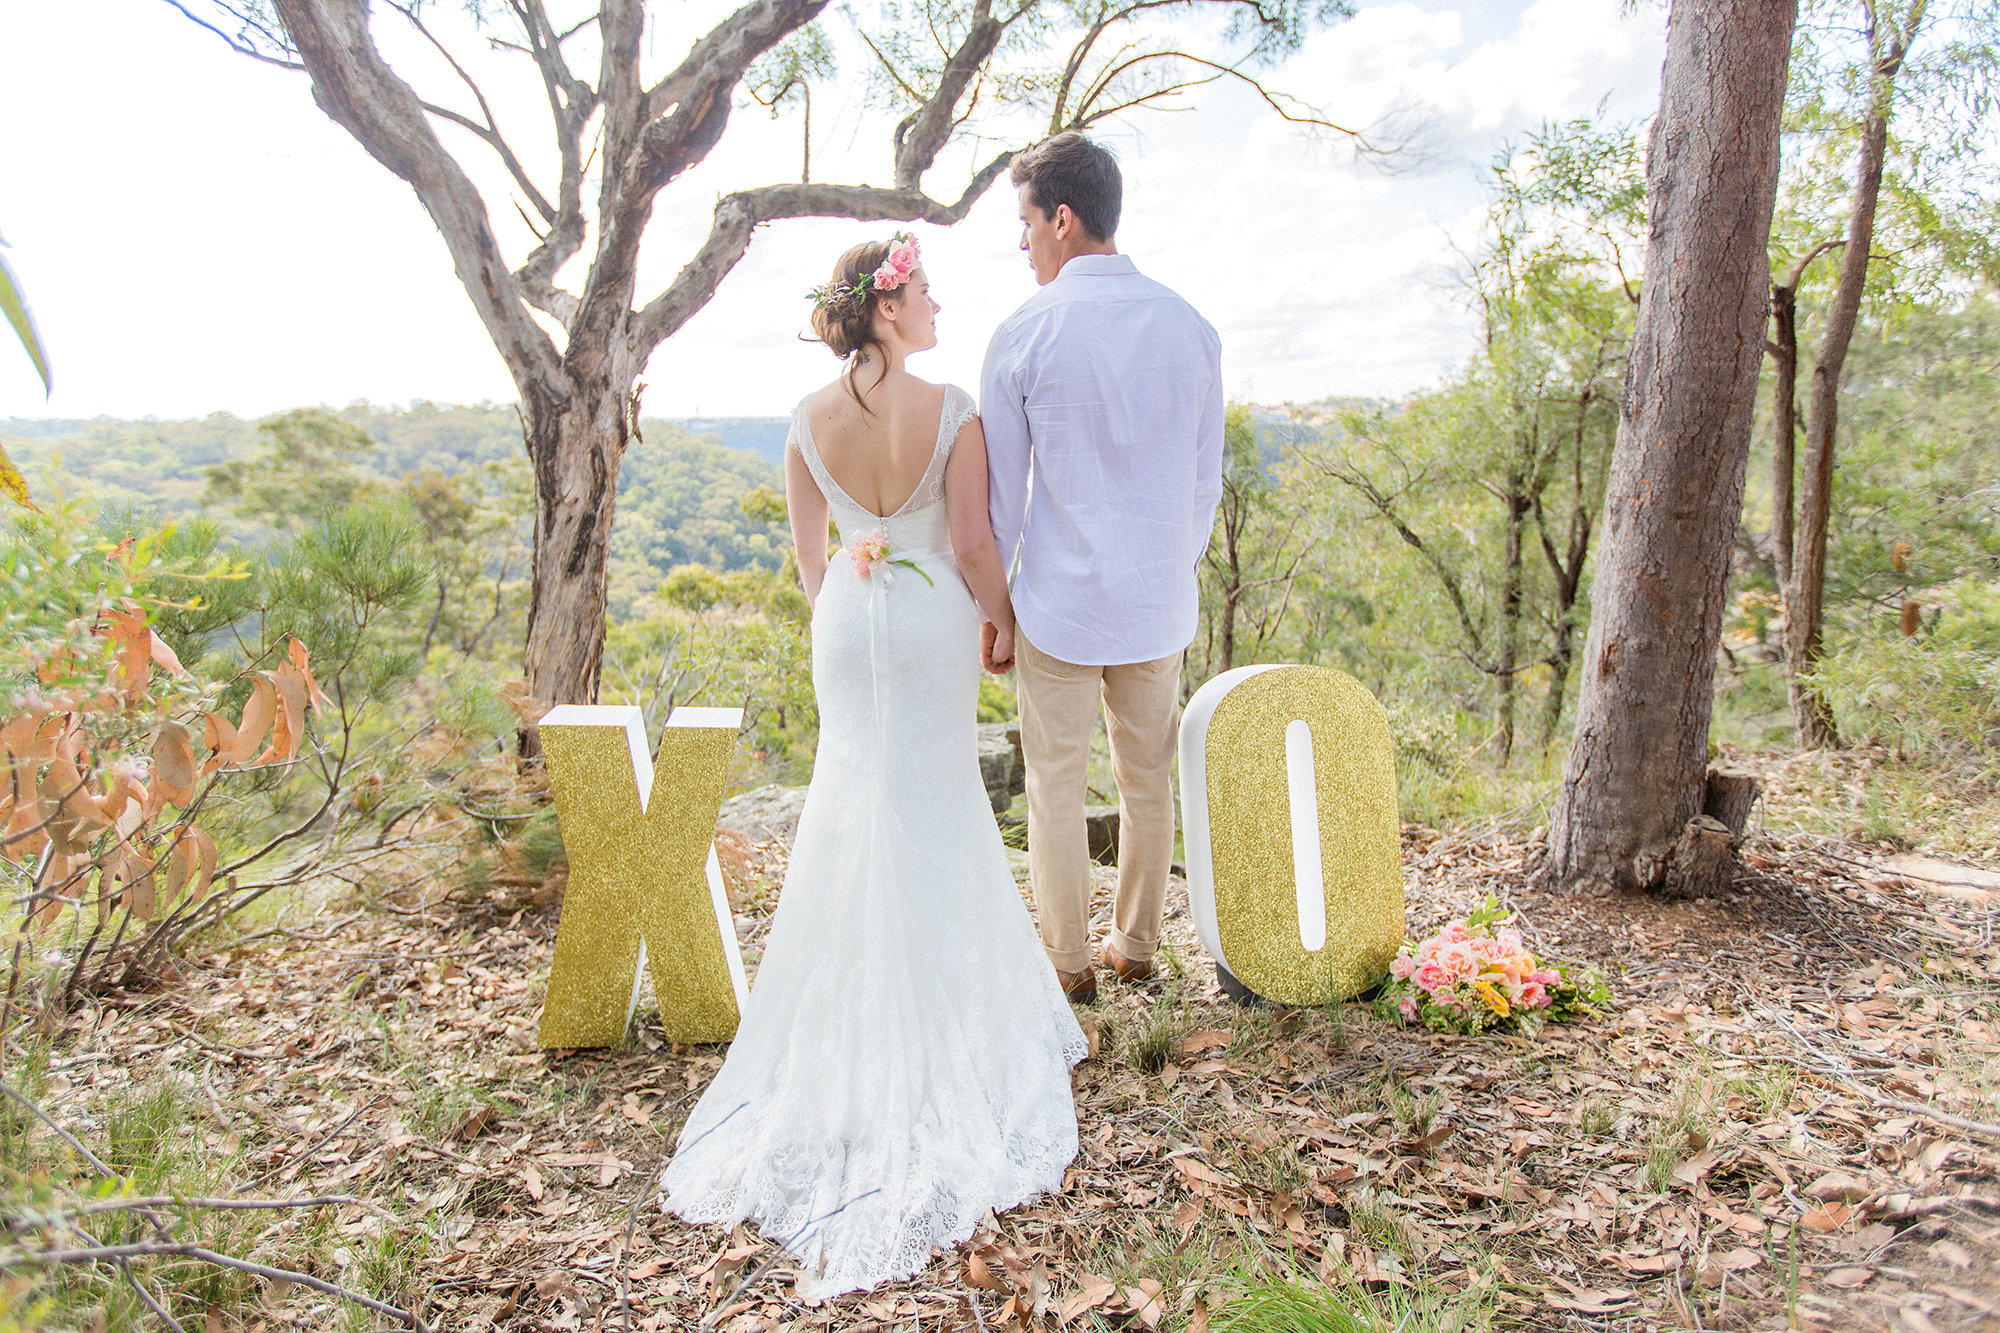 Delphina Bridal Gown by Tanya Anic   Modern Wedding Feature Blog  -Bohemian Elopement